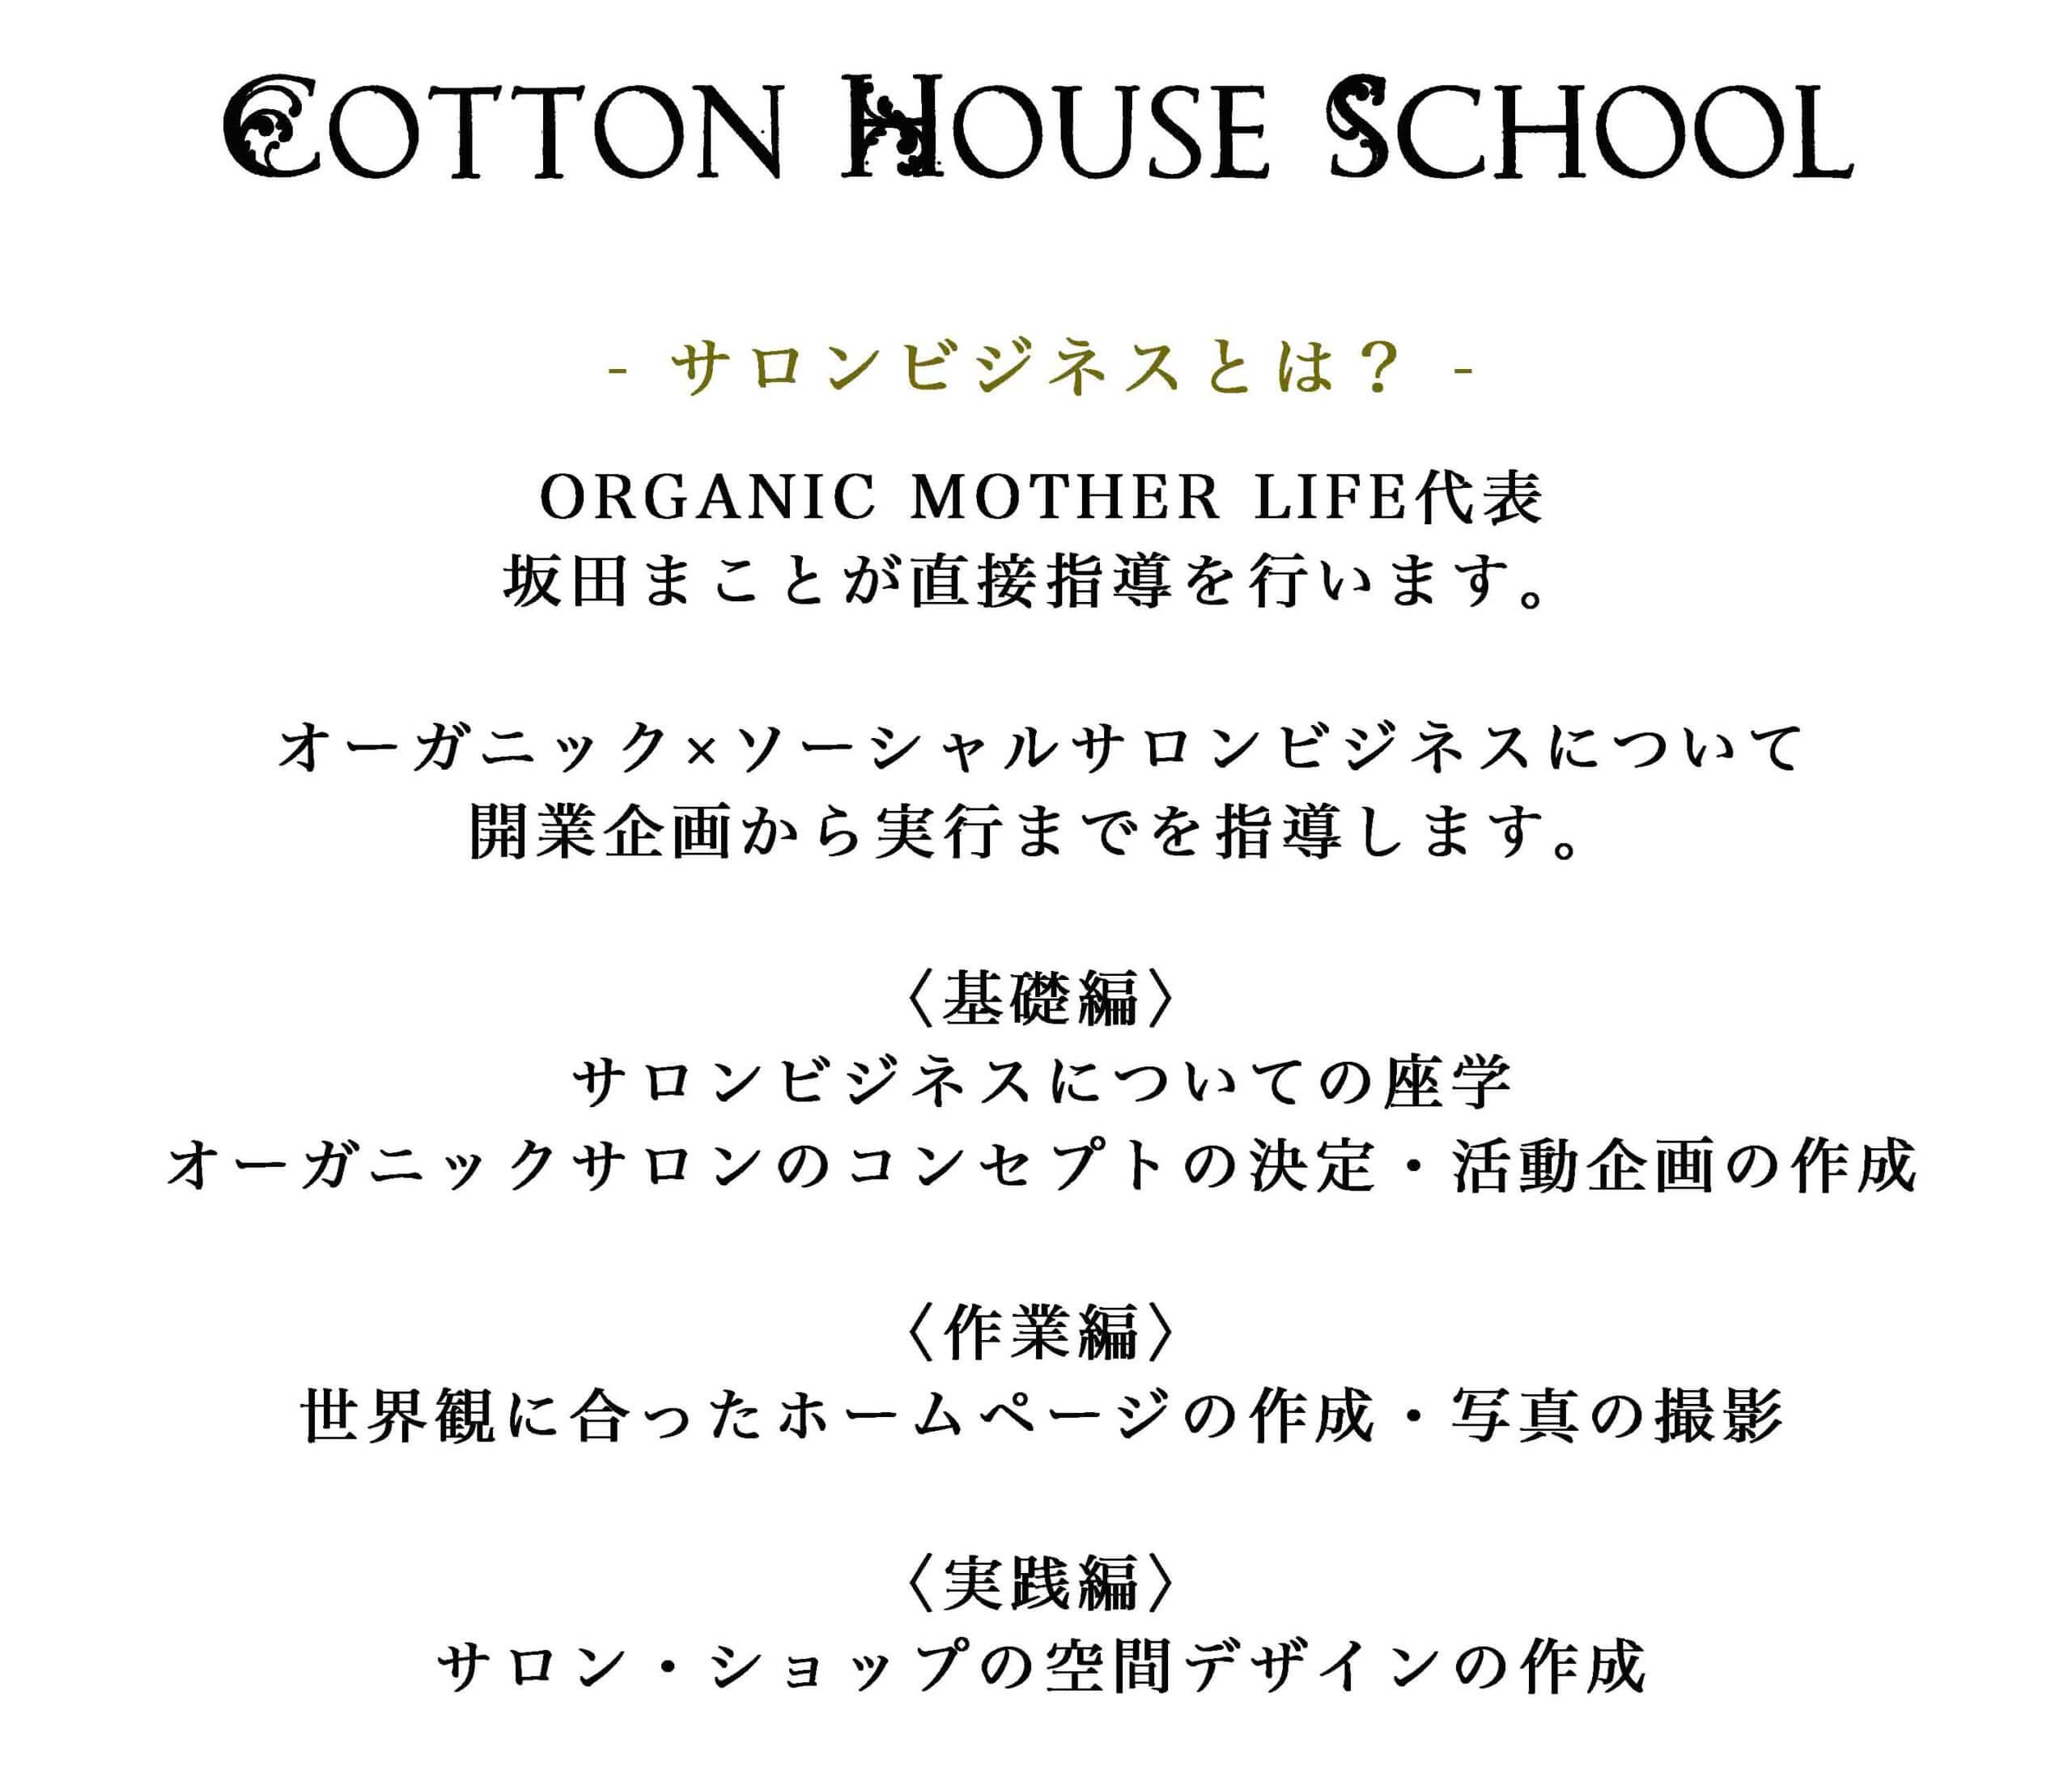 4Cotton House School